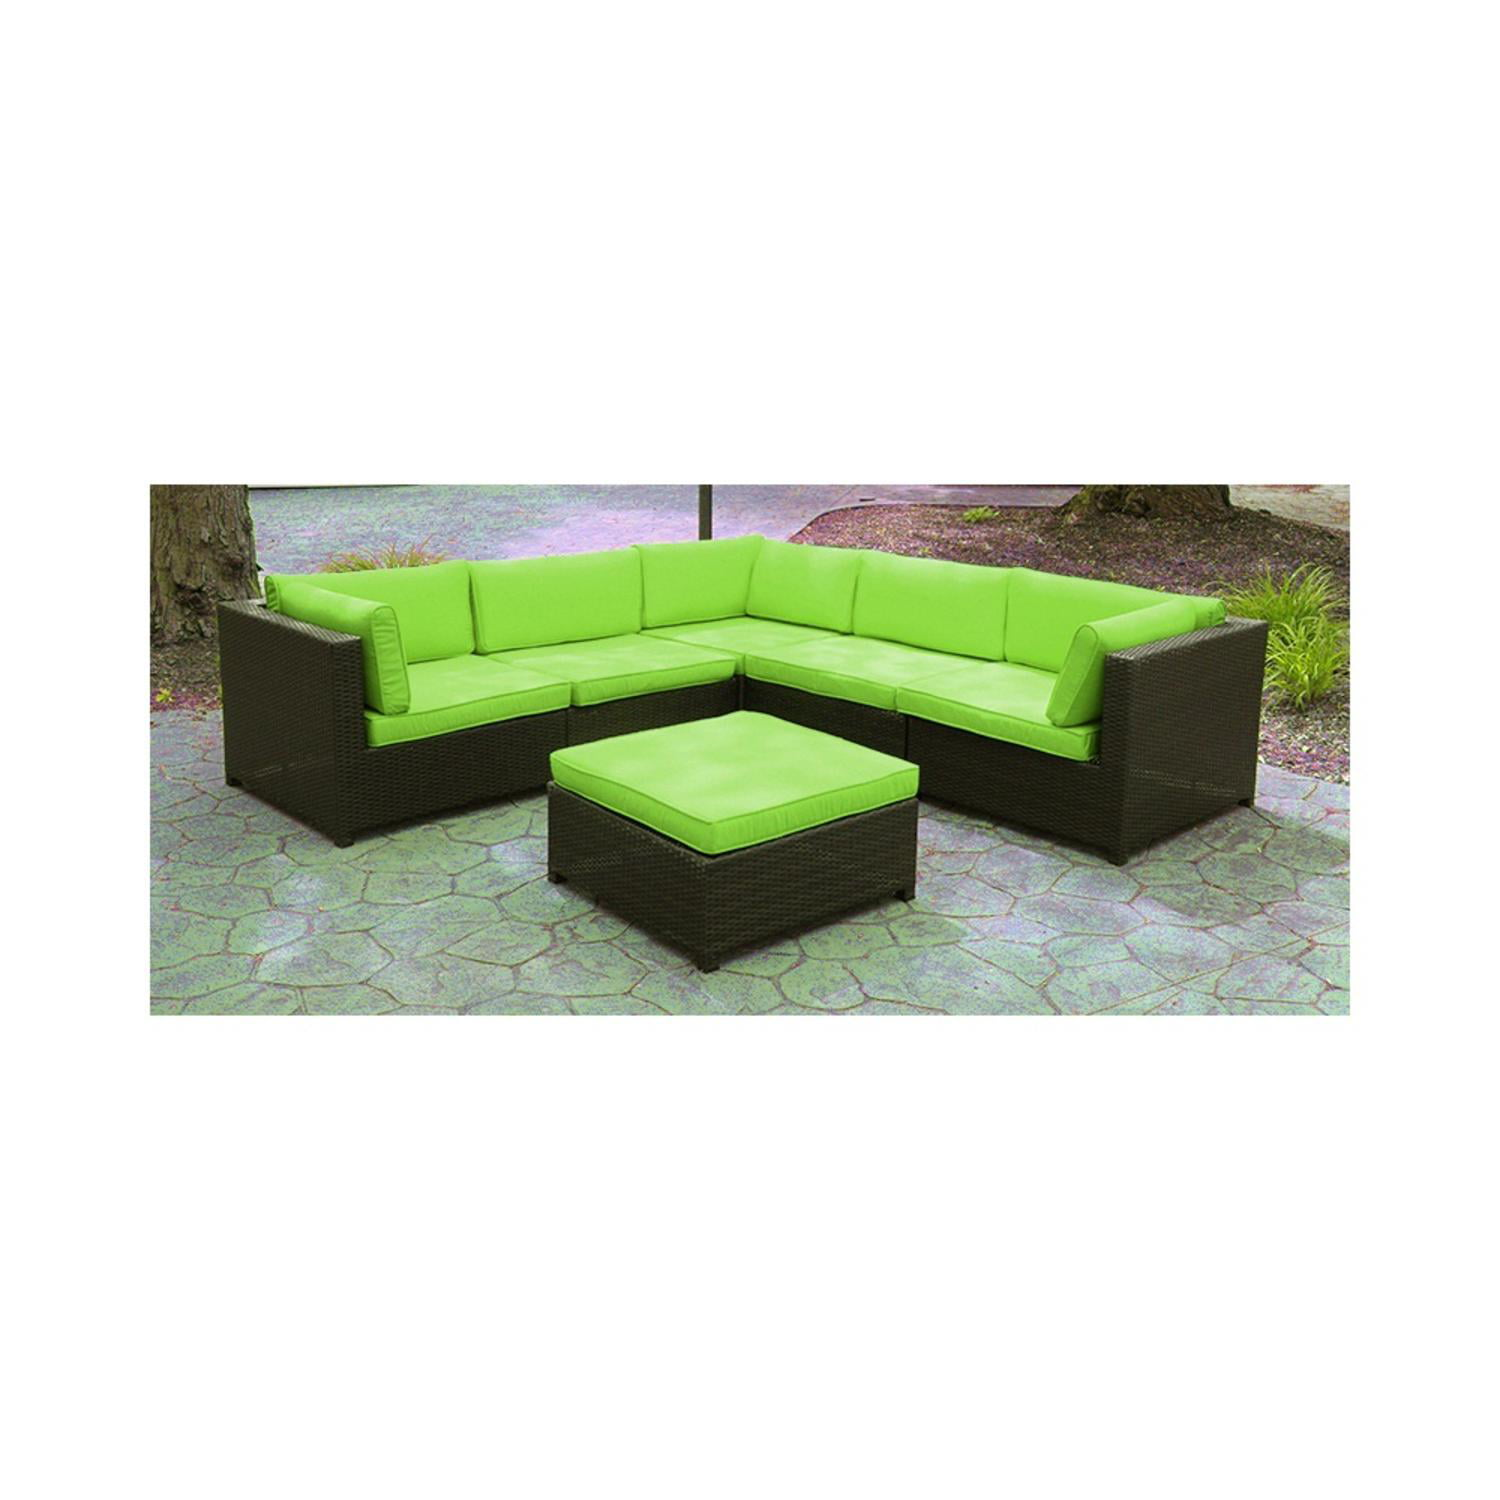 Good Black Resin Wicker Outdoor Furniture Sectional Sofa Set   Lime Green  Cushions   Walmart.com